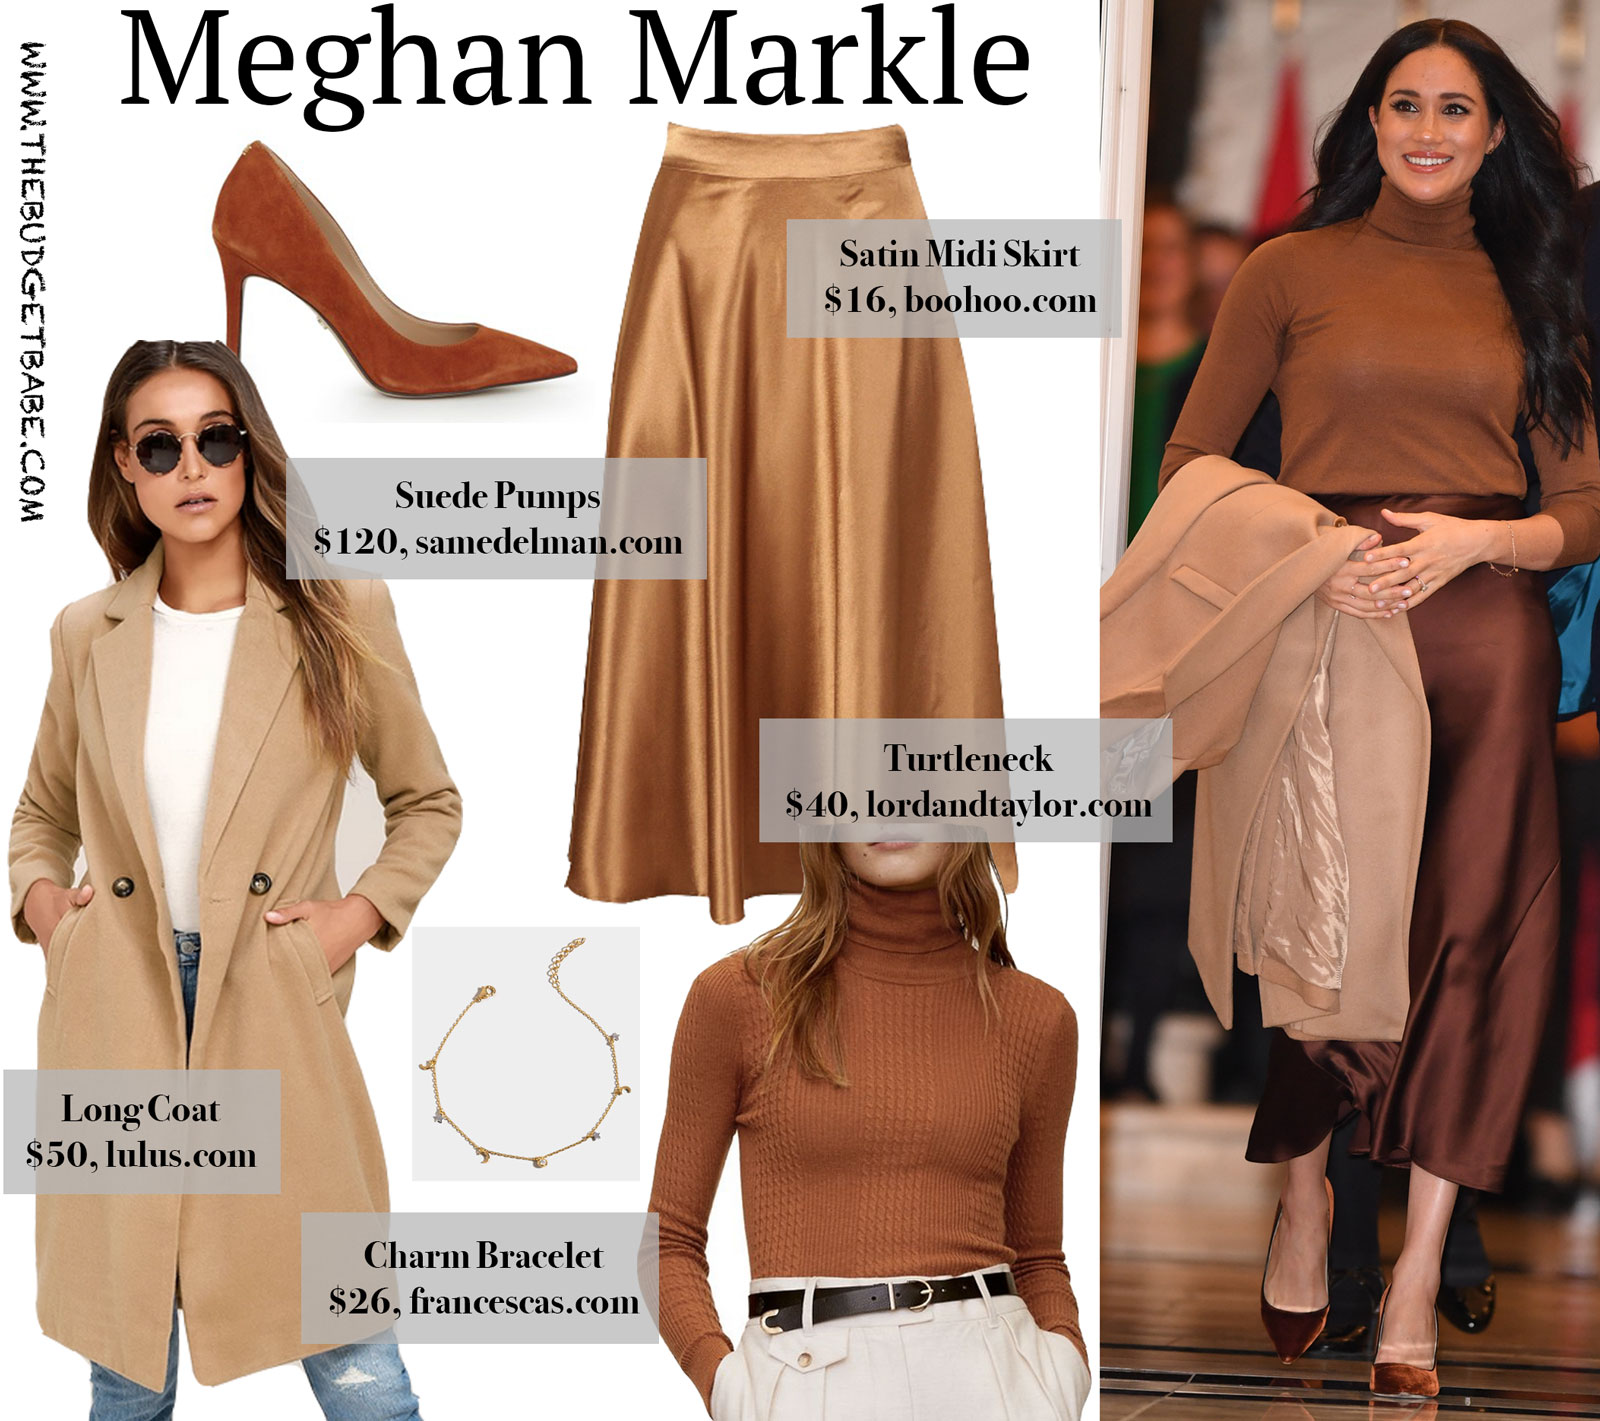 Meghan Markle Satin Skirt and Jimmy Choos Look for Less